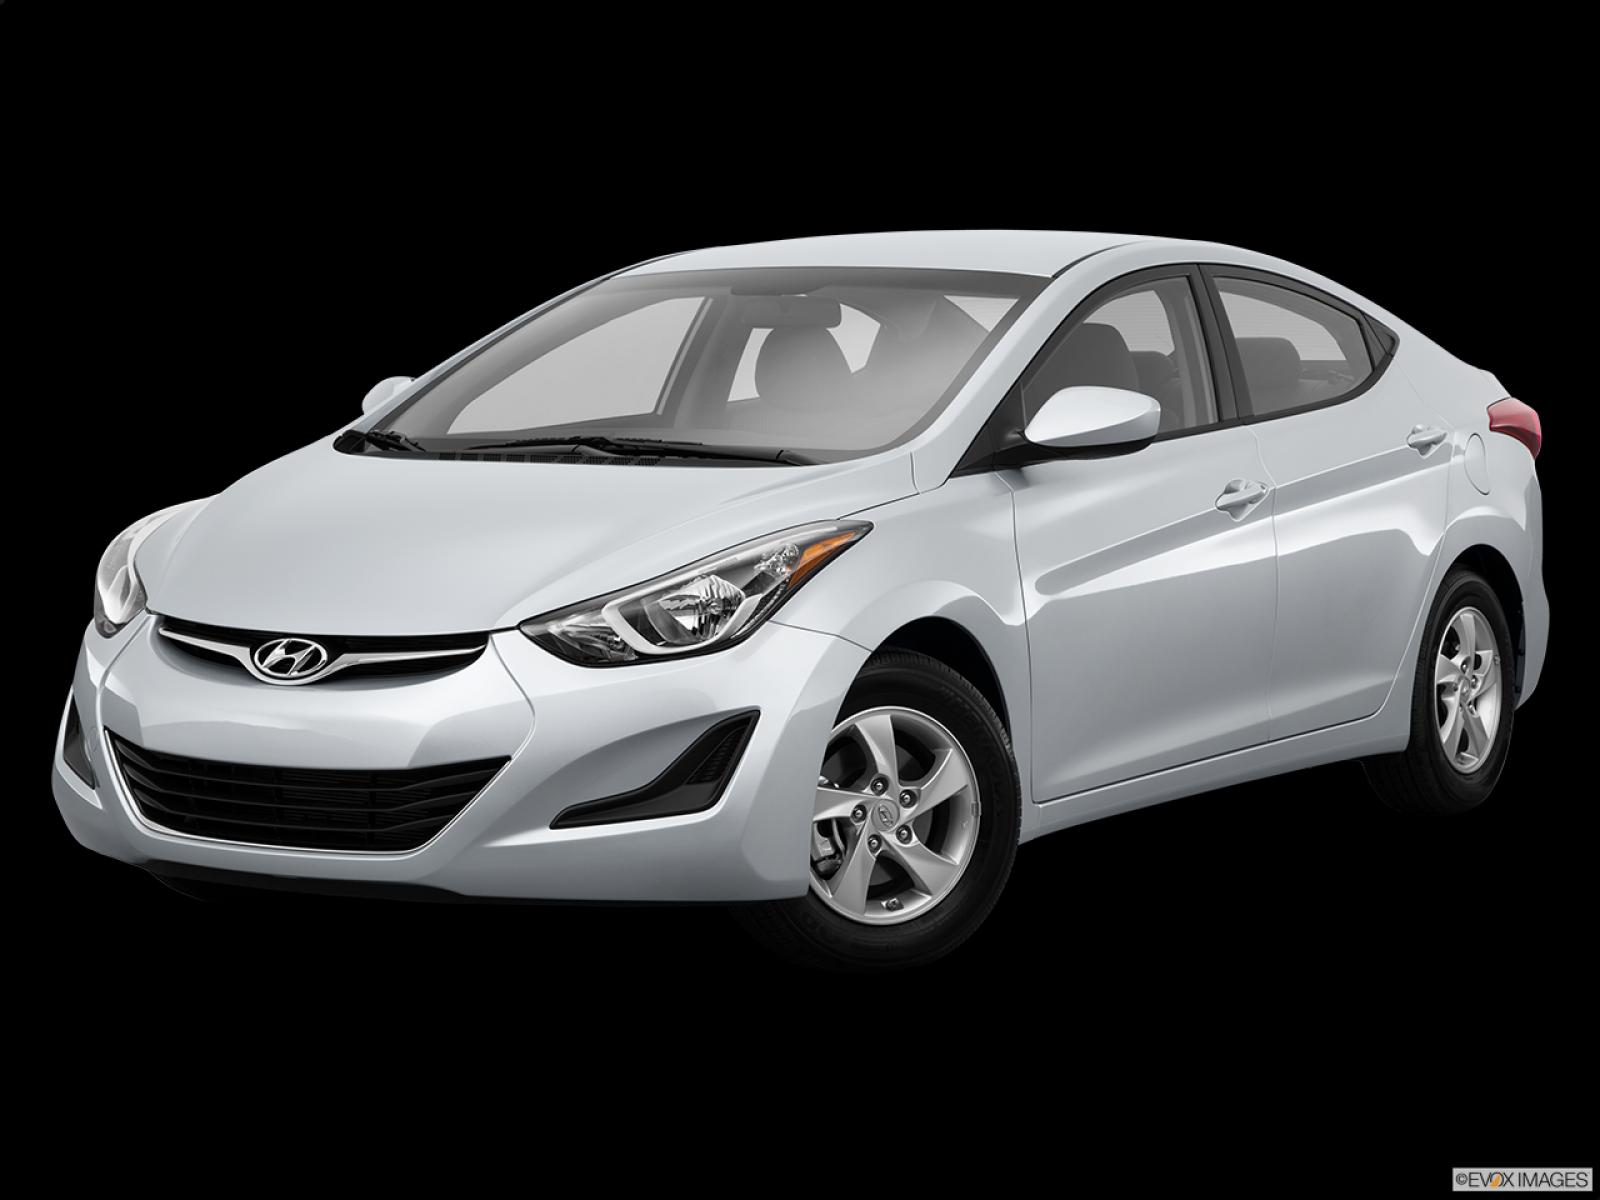 2015 hyundai elantra information and photos zombiedrive. Black Bedroom Furniture Sets. Home Design Ideas